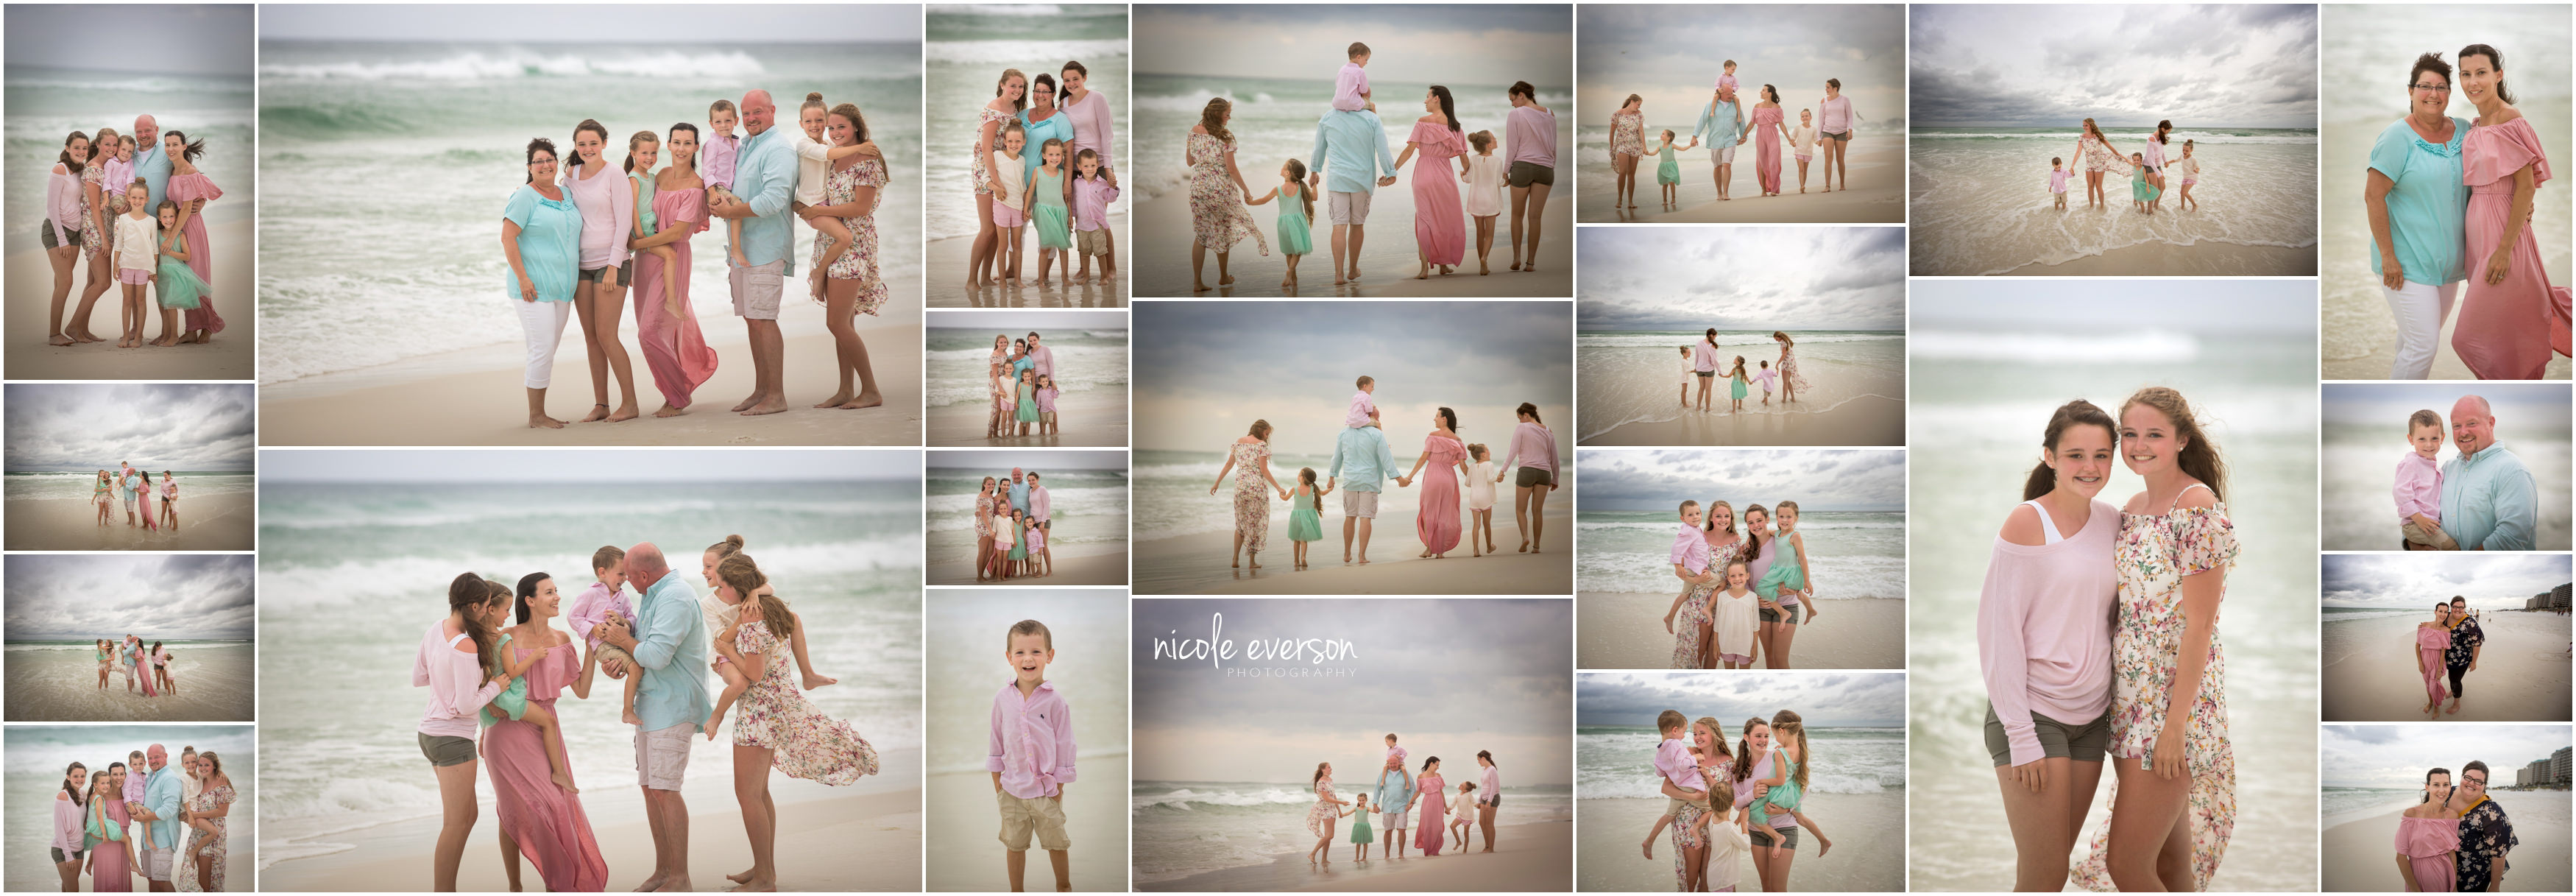 family pictures on Destin beach